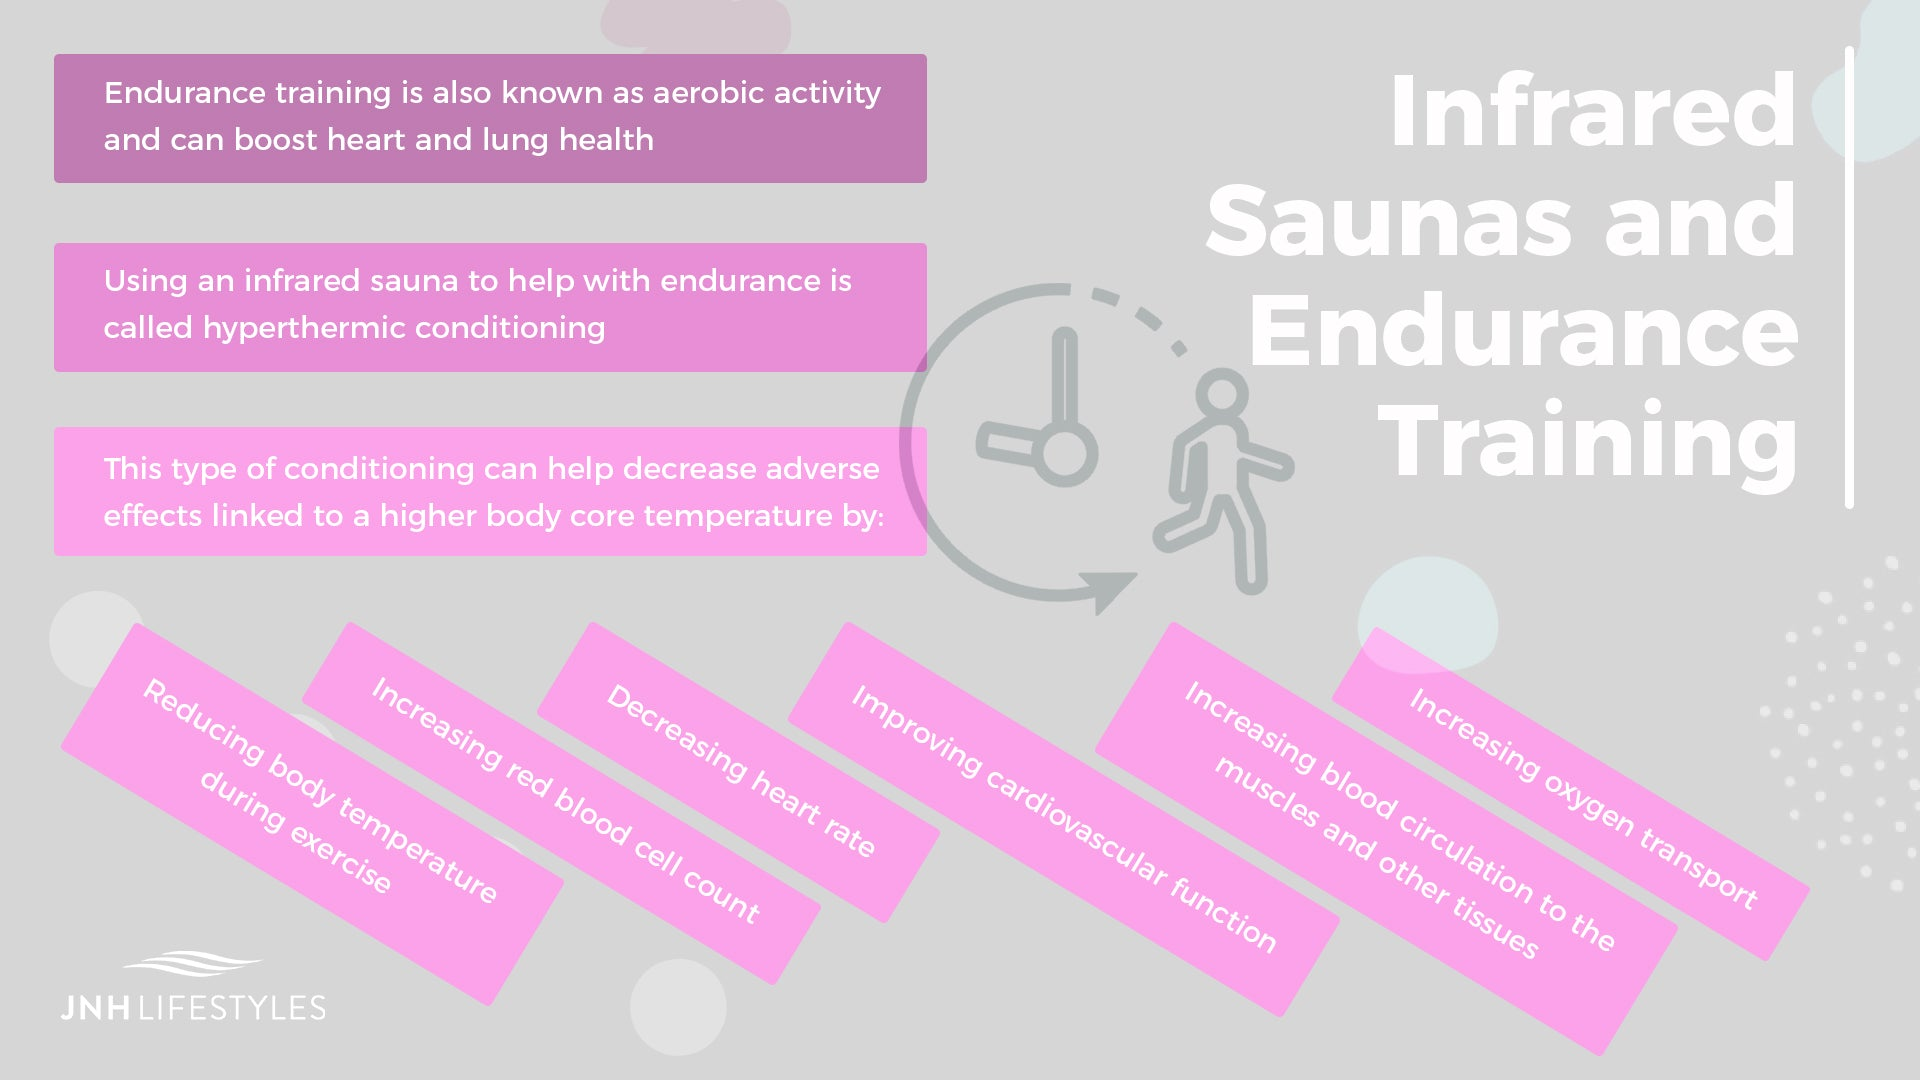 Infrared Saunas and Endurance Training -Endurance training is also known as aerobic activity and can boost heart and lung health -Using an infrared sauna to help with endurance is called hyperthermic conditioning -This type of conditioning can help decrease adverse effects linked to a higher body core temperature by: -Improving cardiovascular function -Decreasing heart rate -Reducing body temperature during exercise -Increasing blood circulation to the muscles and other tissues -Increasing oxygen transport -Increasing red blood cell count